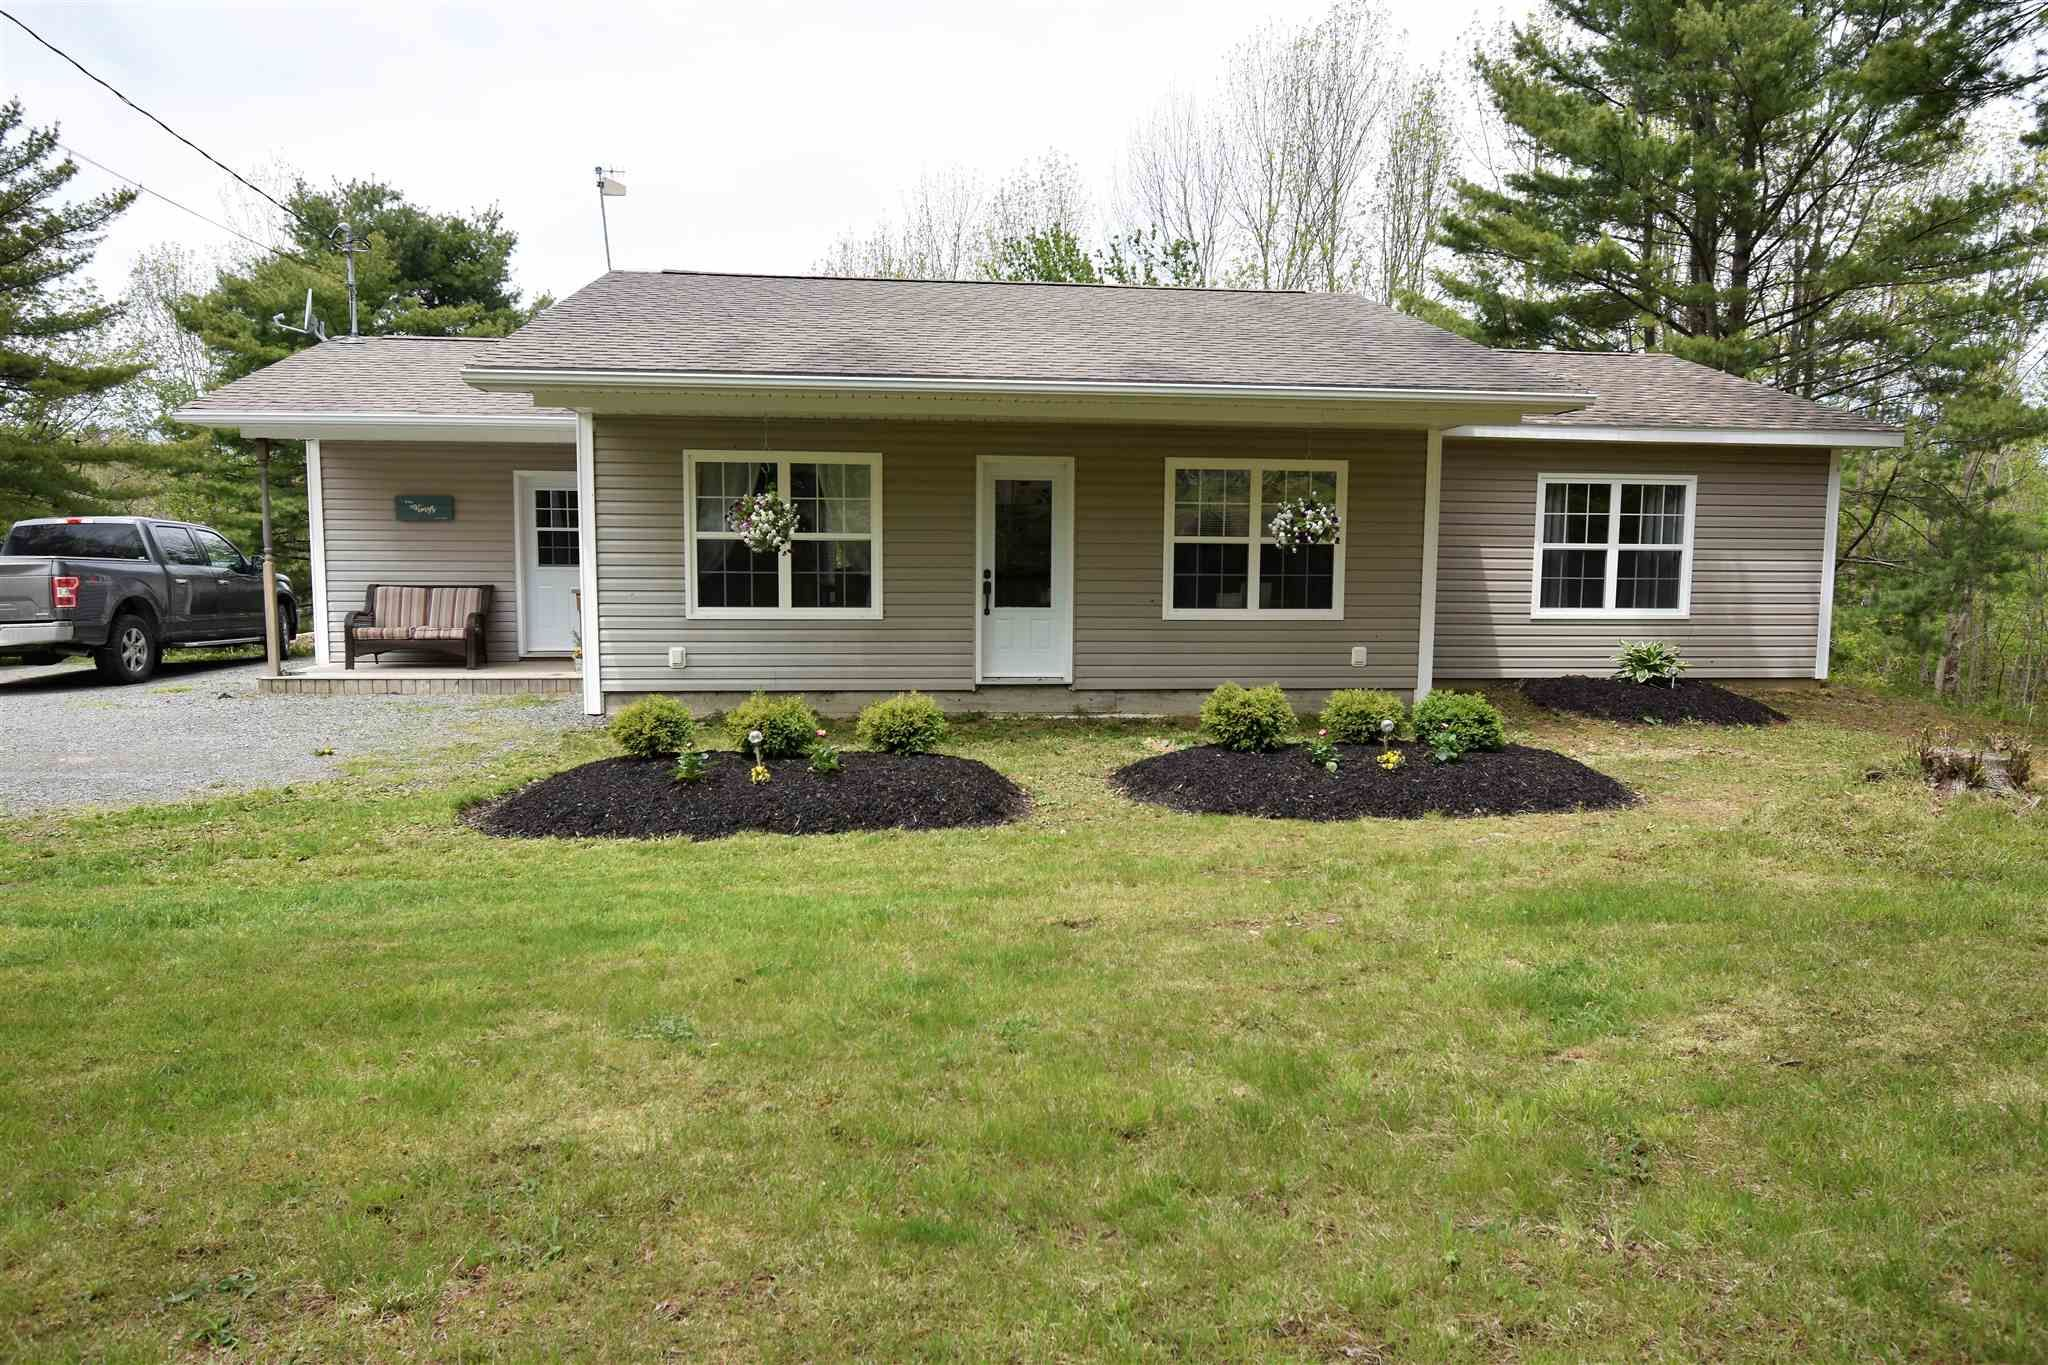 Main Photo: 3931 SISSIBOO Road in South Range: 401-Digby County Residential for sale (Annapolis Valley)  : MLS®# 202113373